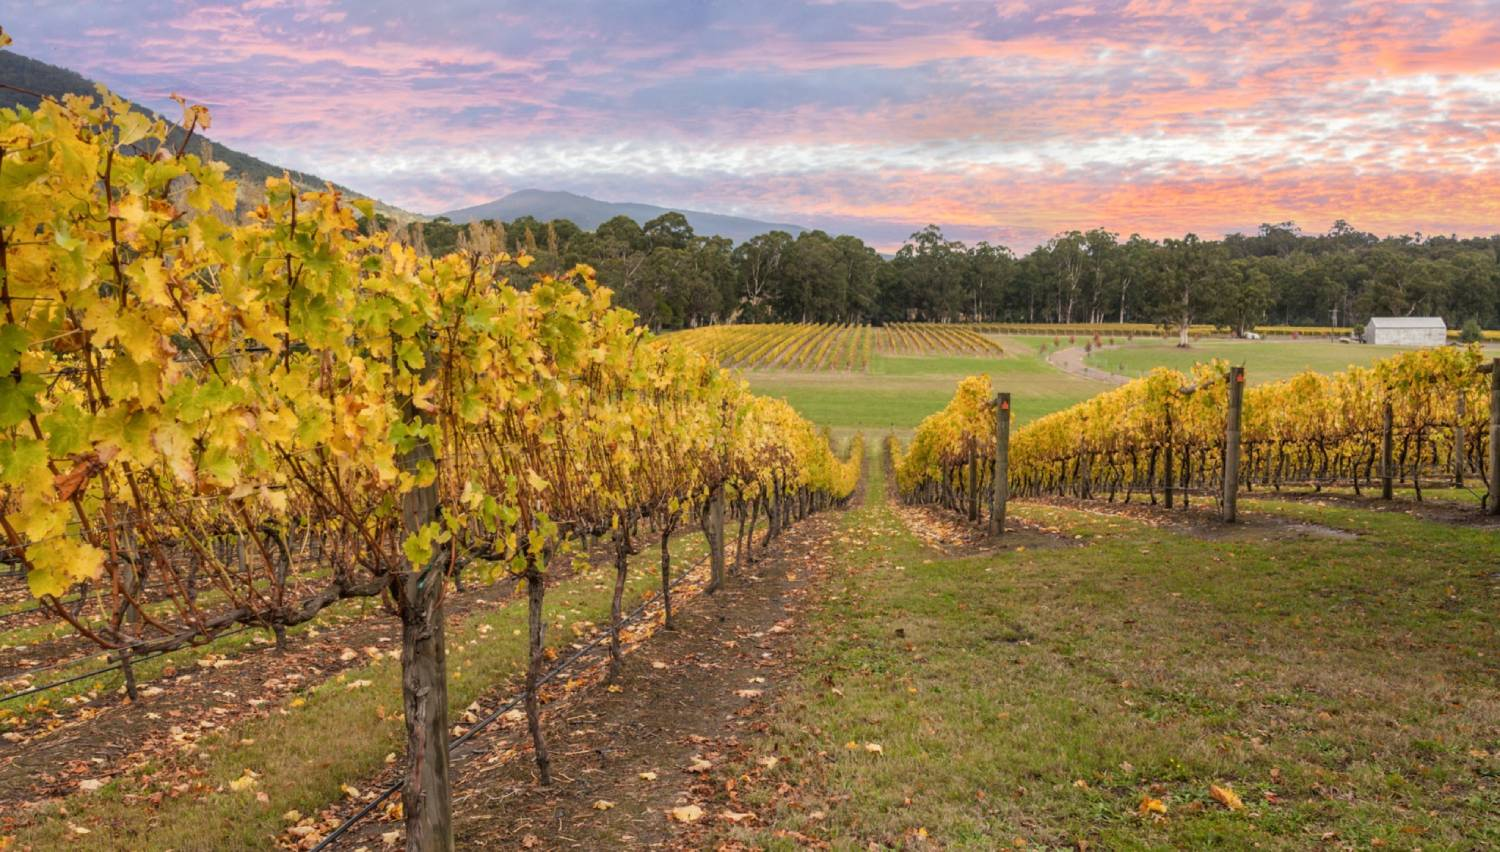 Yarra Valley - Things To Do In Australia